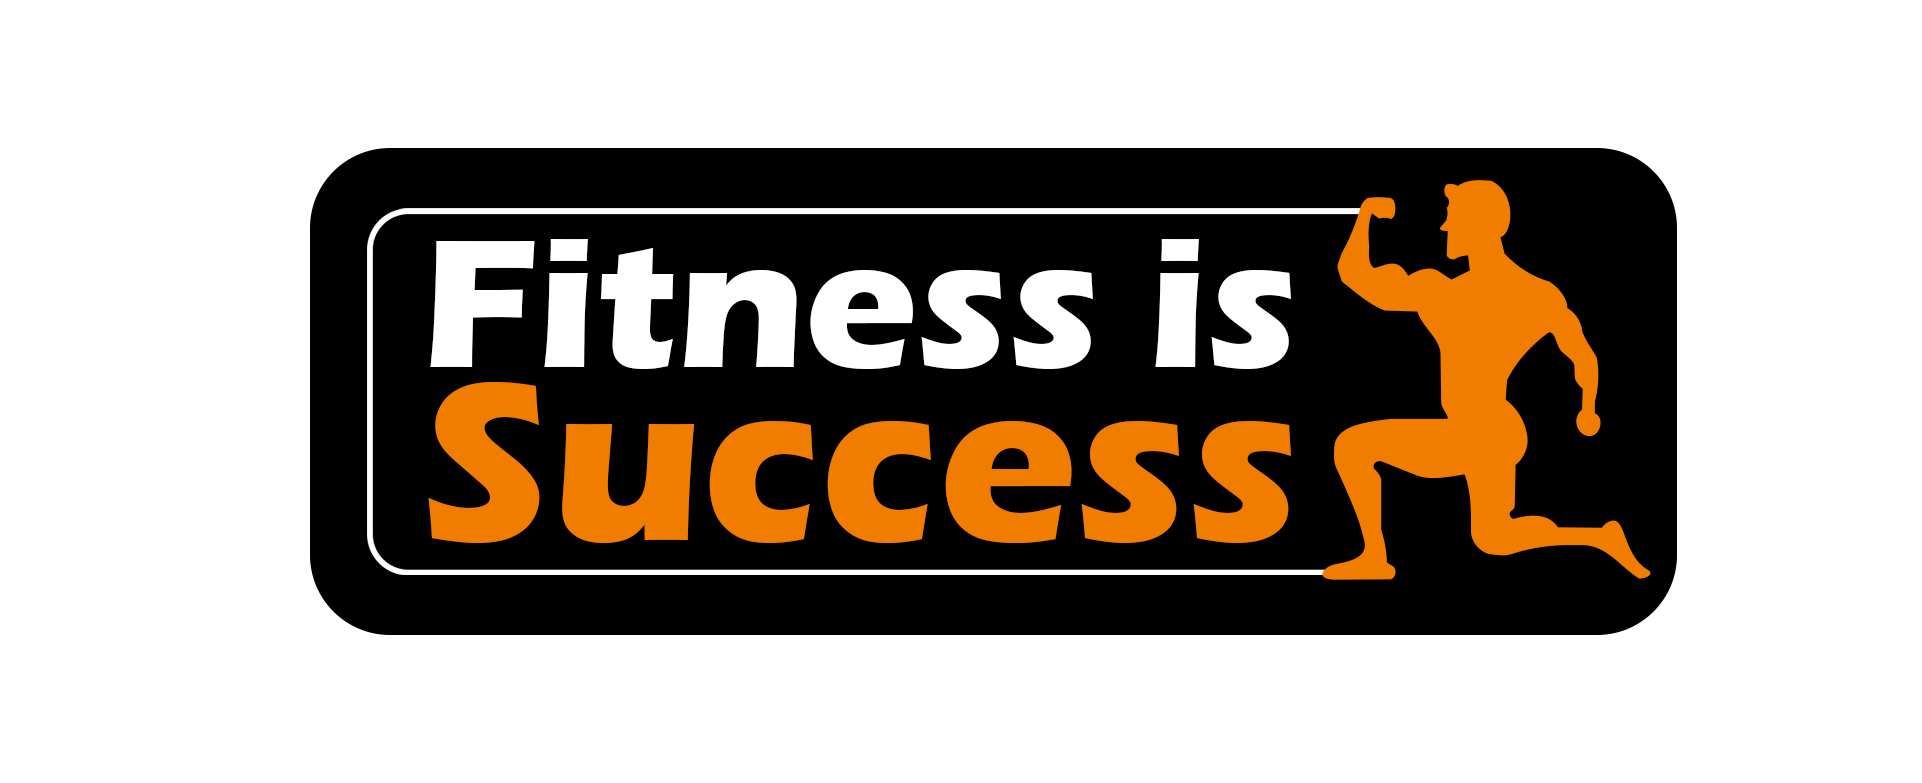 Call To Action Button | Fitness is Success